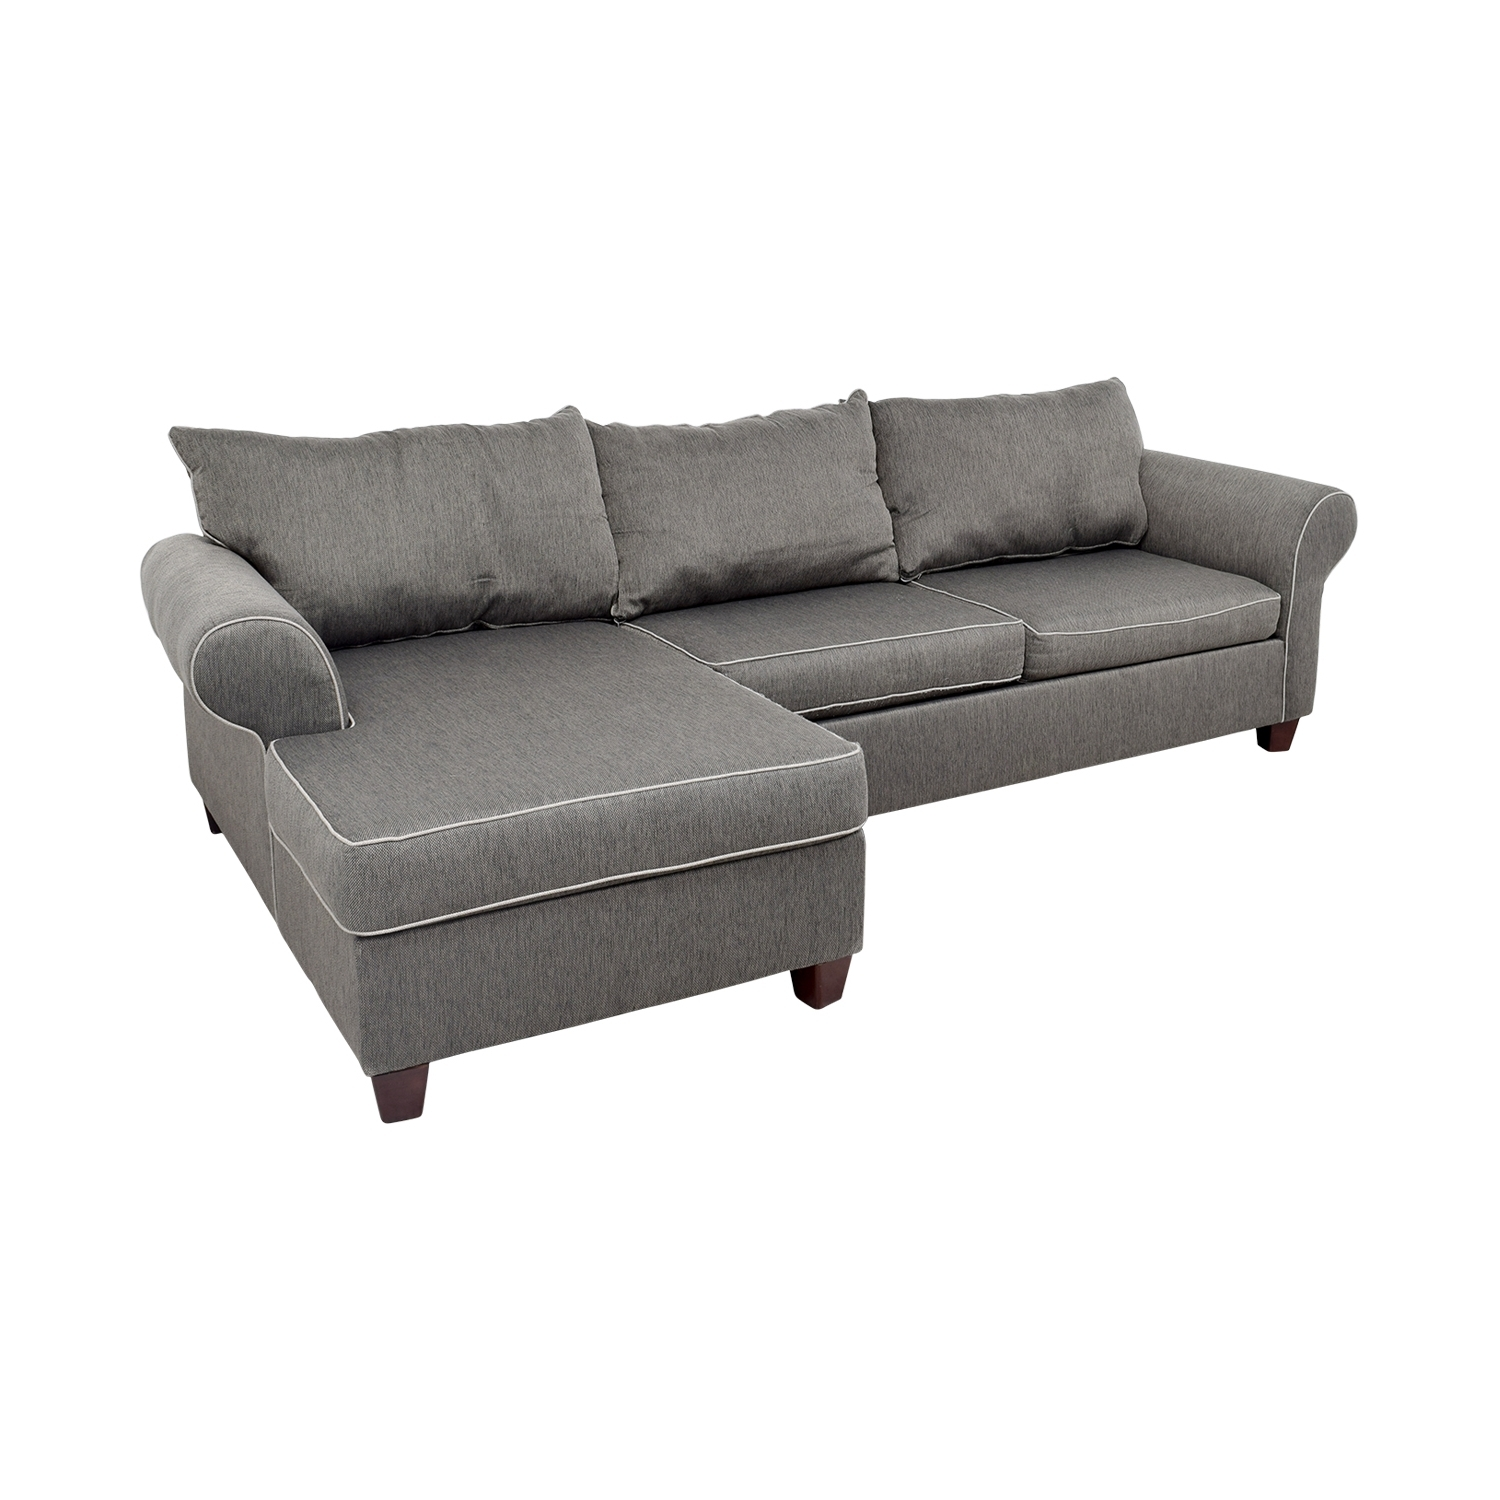 [%58% Off – Bob's Furniture Bob's Furniture Grey Chaise Sectional Throughout Most Recently Released Bobs Furniture Chaises|Bobs Furniture Chaises Regarding Recent 58% Off – Bob's Furniture Bob's Furniture Grey Chaise Sectional|Well Known Bobs Furniture Chaises With 58% Off – Bob's Furniture Bob's Furniture Grey Chaise Sectional|Recent 58% Off – Bob's Furniture Bob's Furniture Grey Chaise Sectional Intended For Bobs Furniture Chaises%] (View 6 of 15)